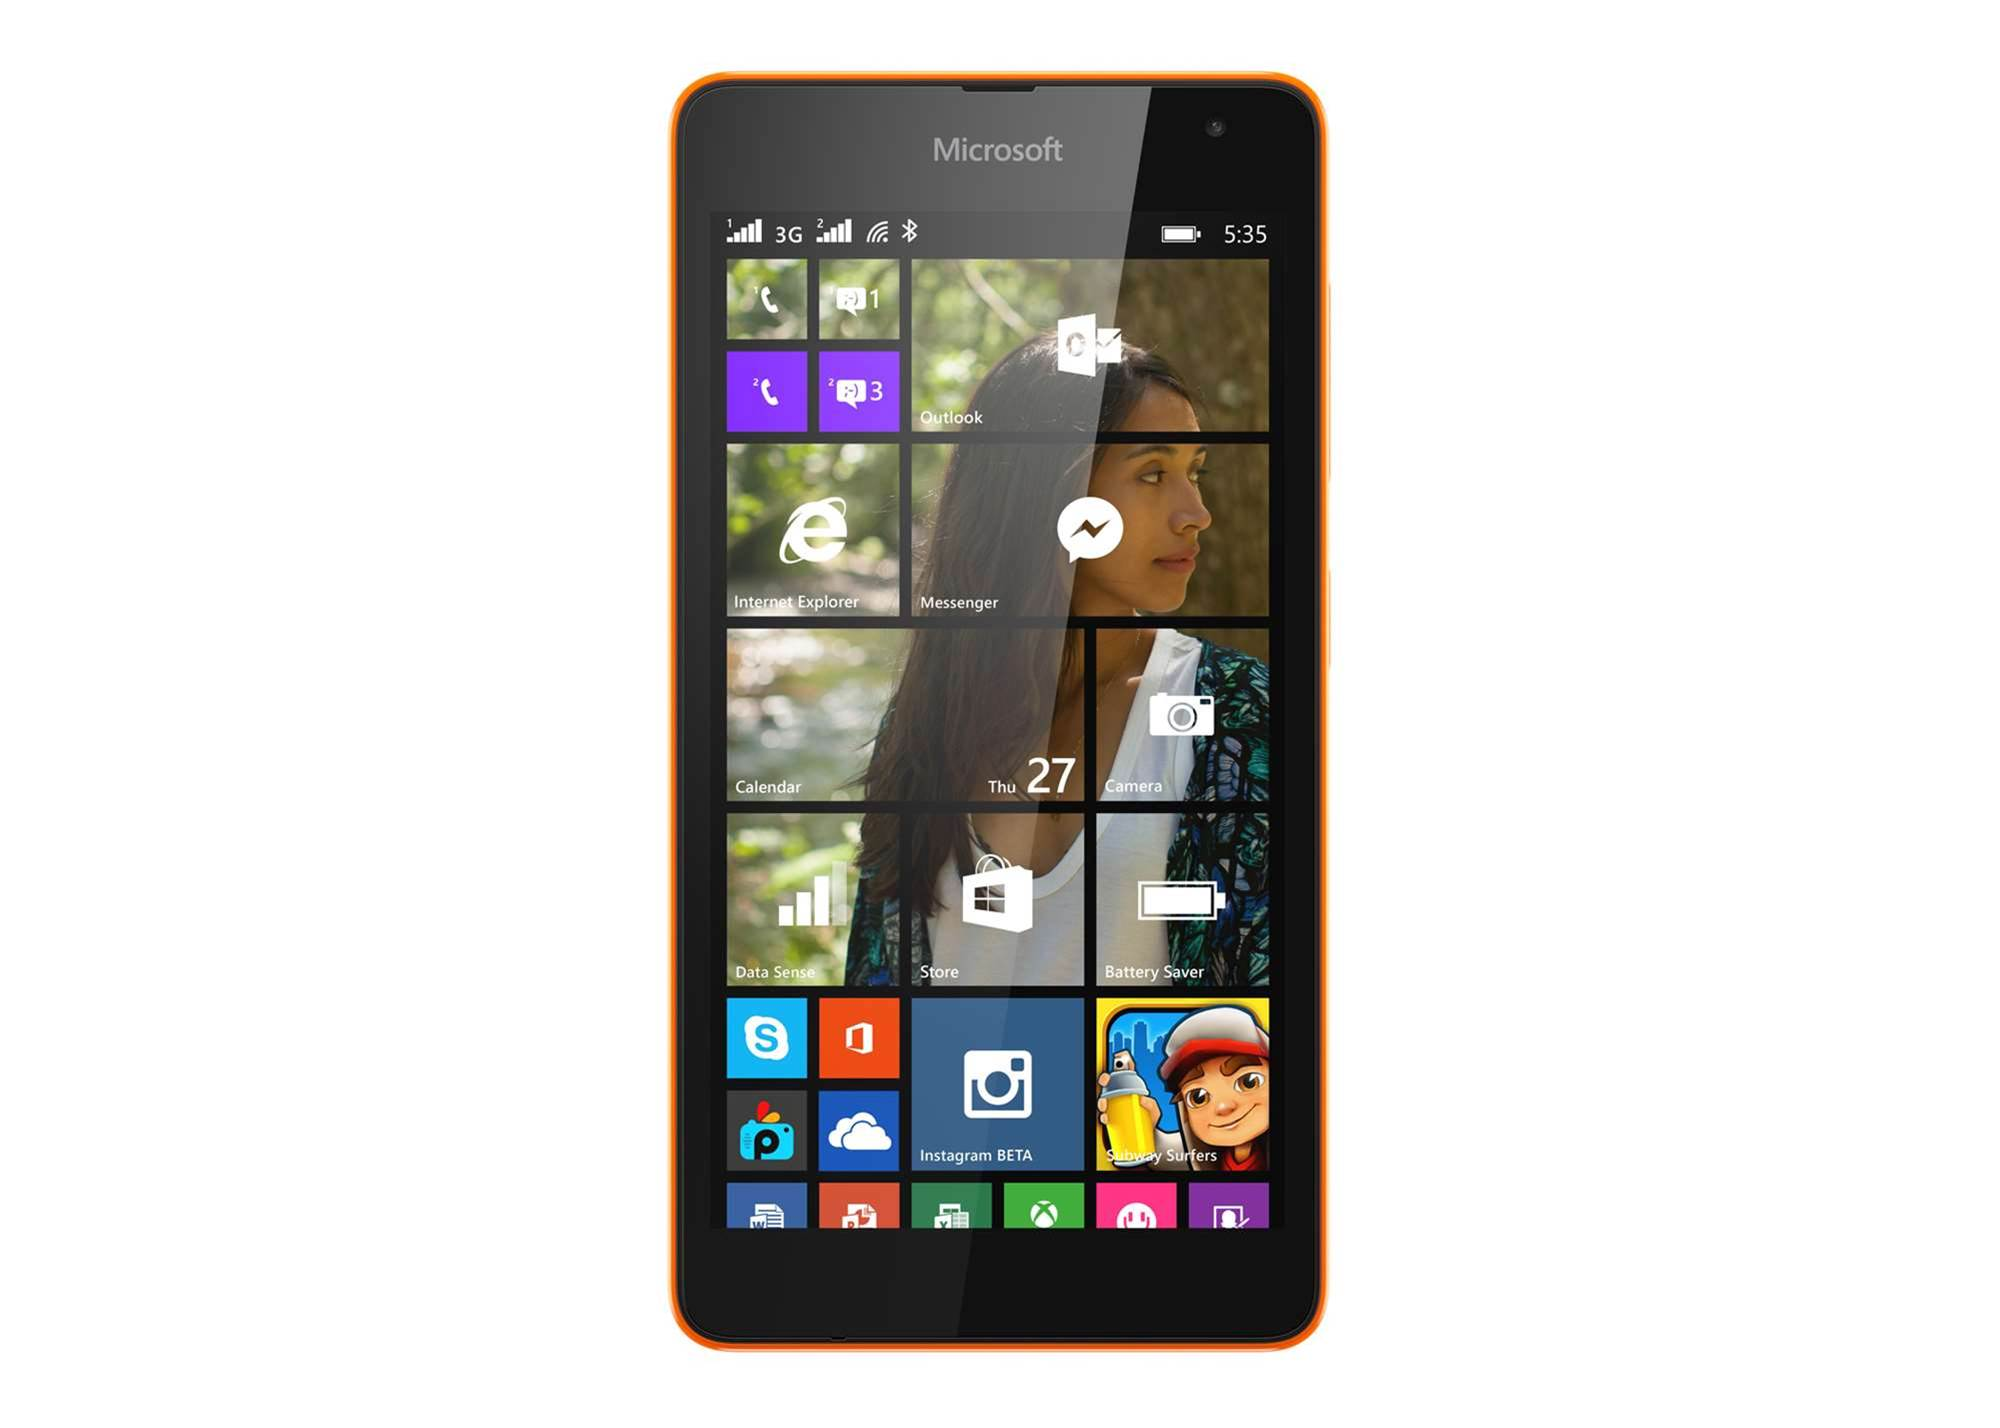 Photos: Microsoft Lumia 535